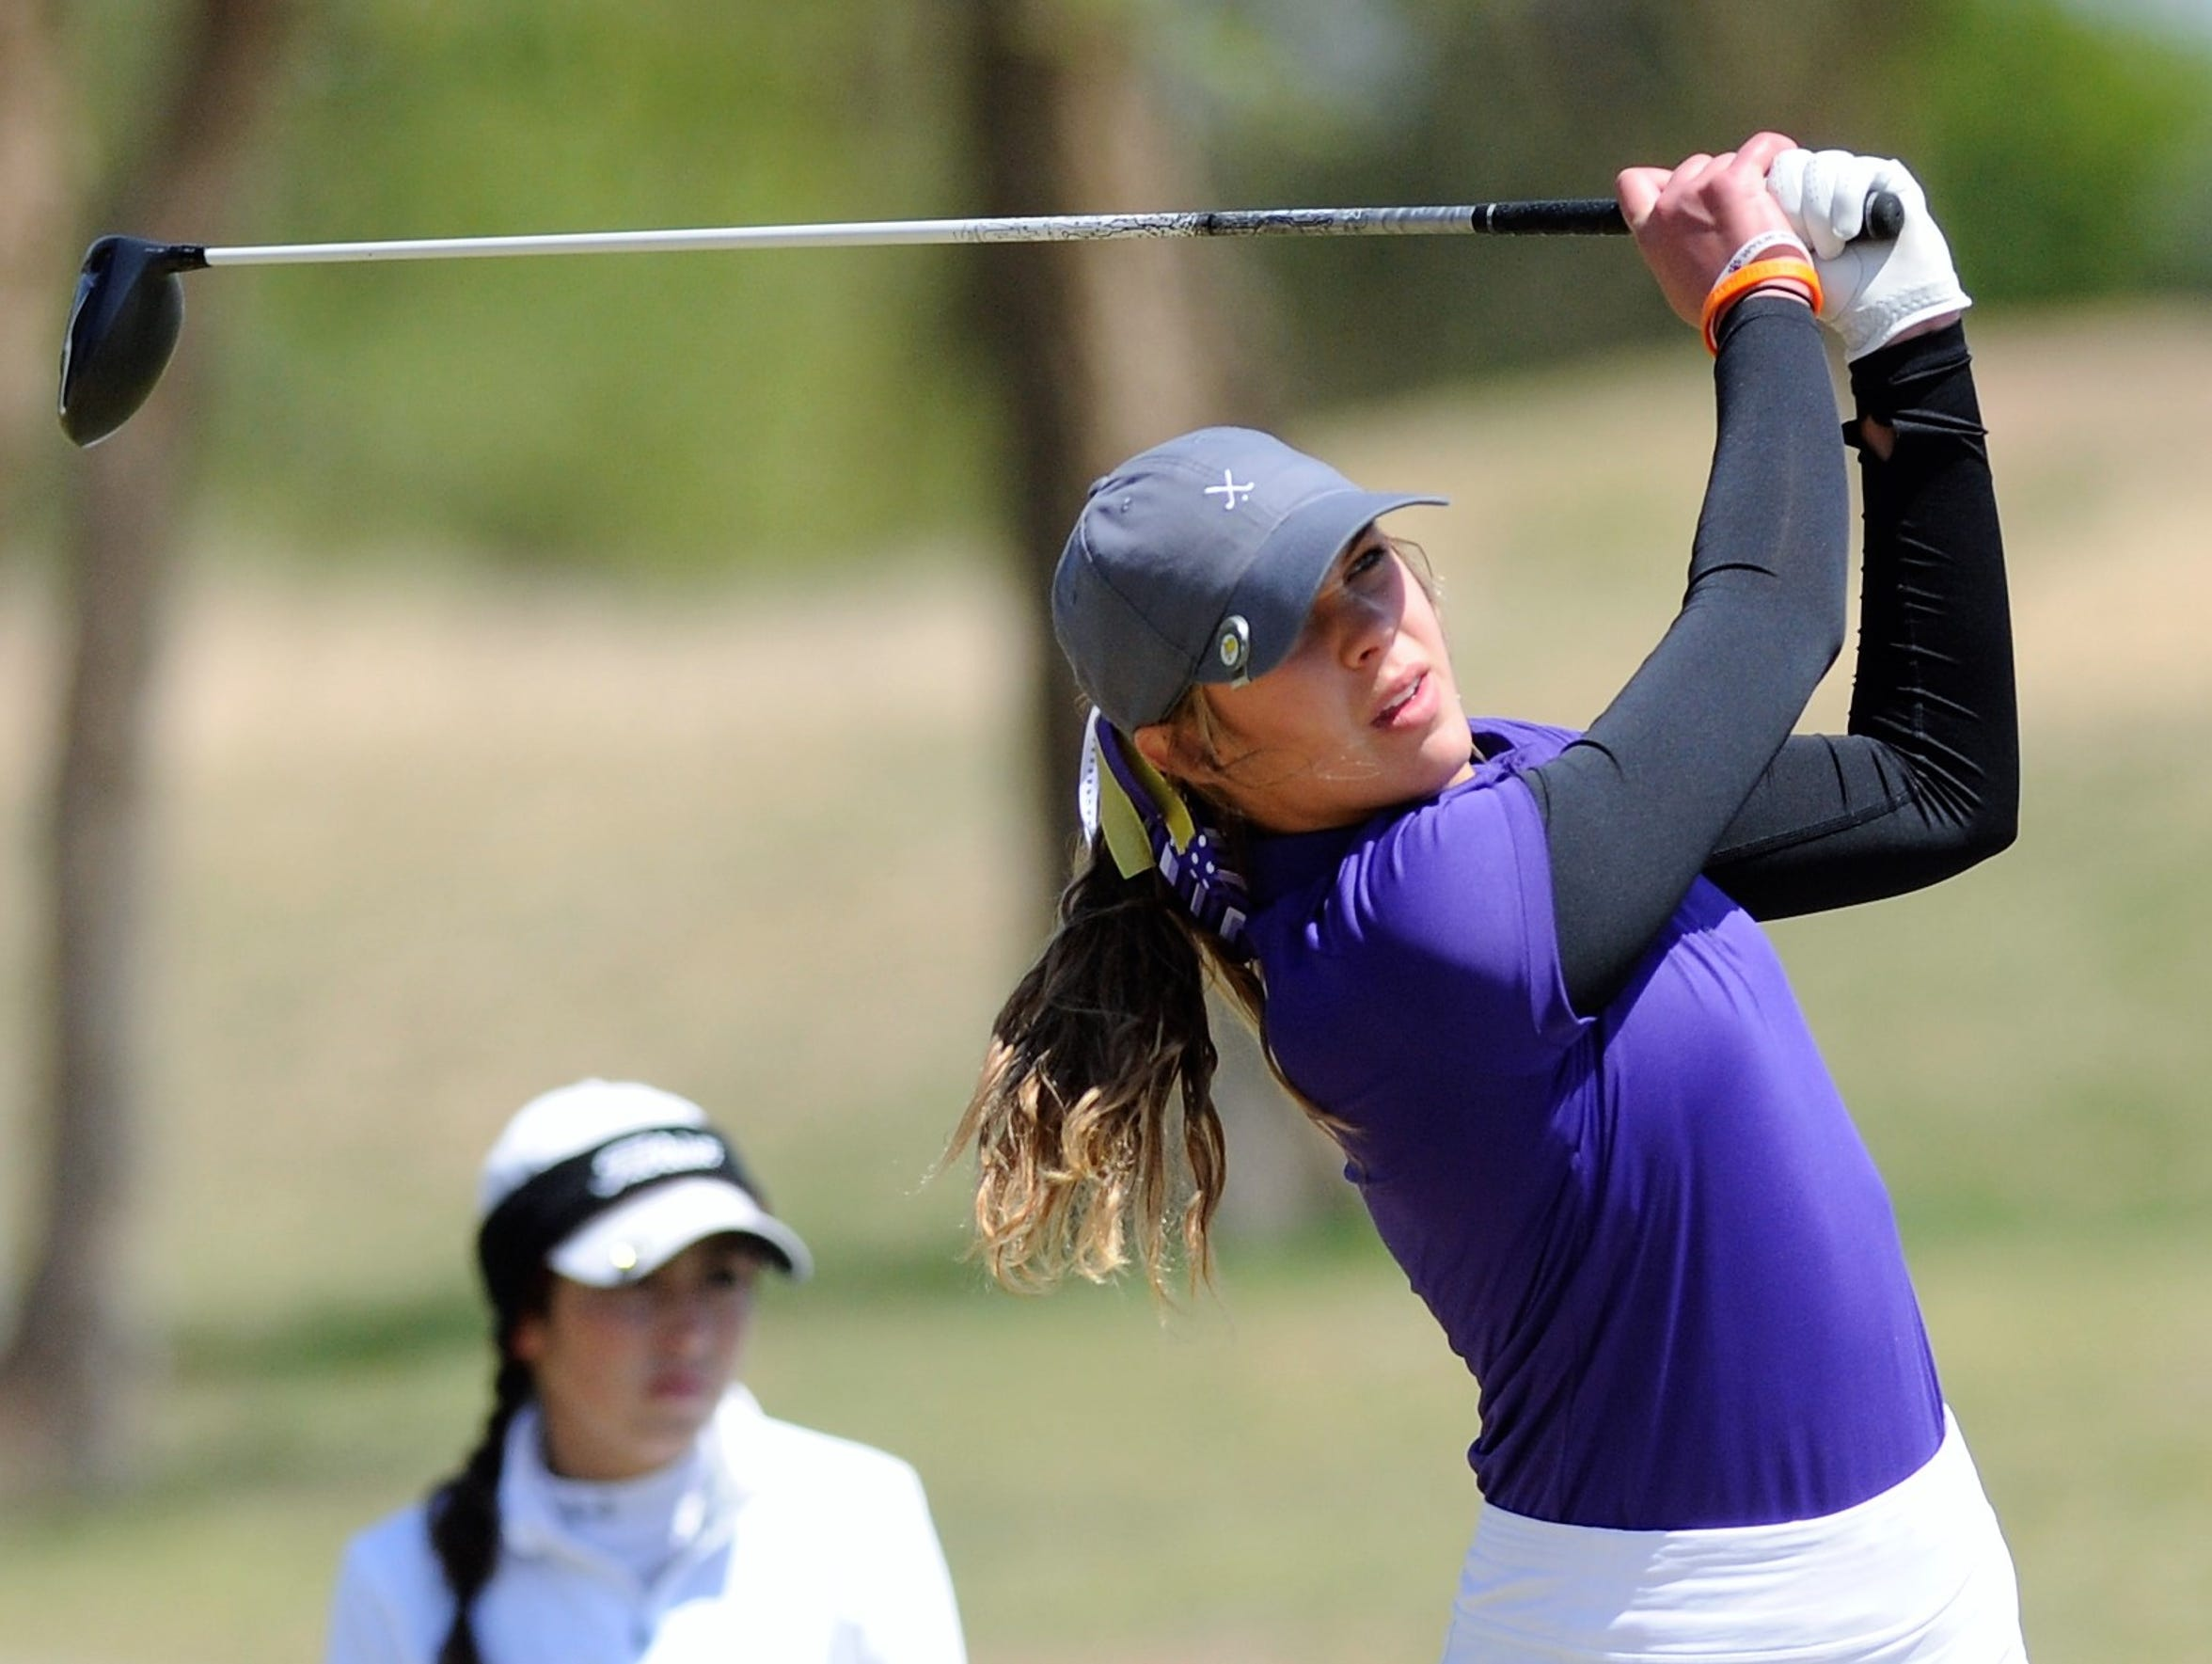 Wylie's Maddi Olson tees off during the first round